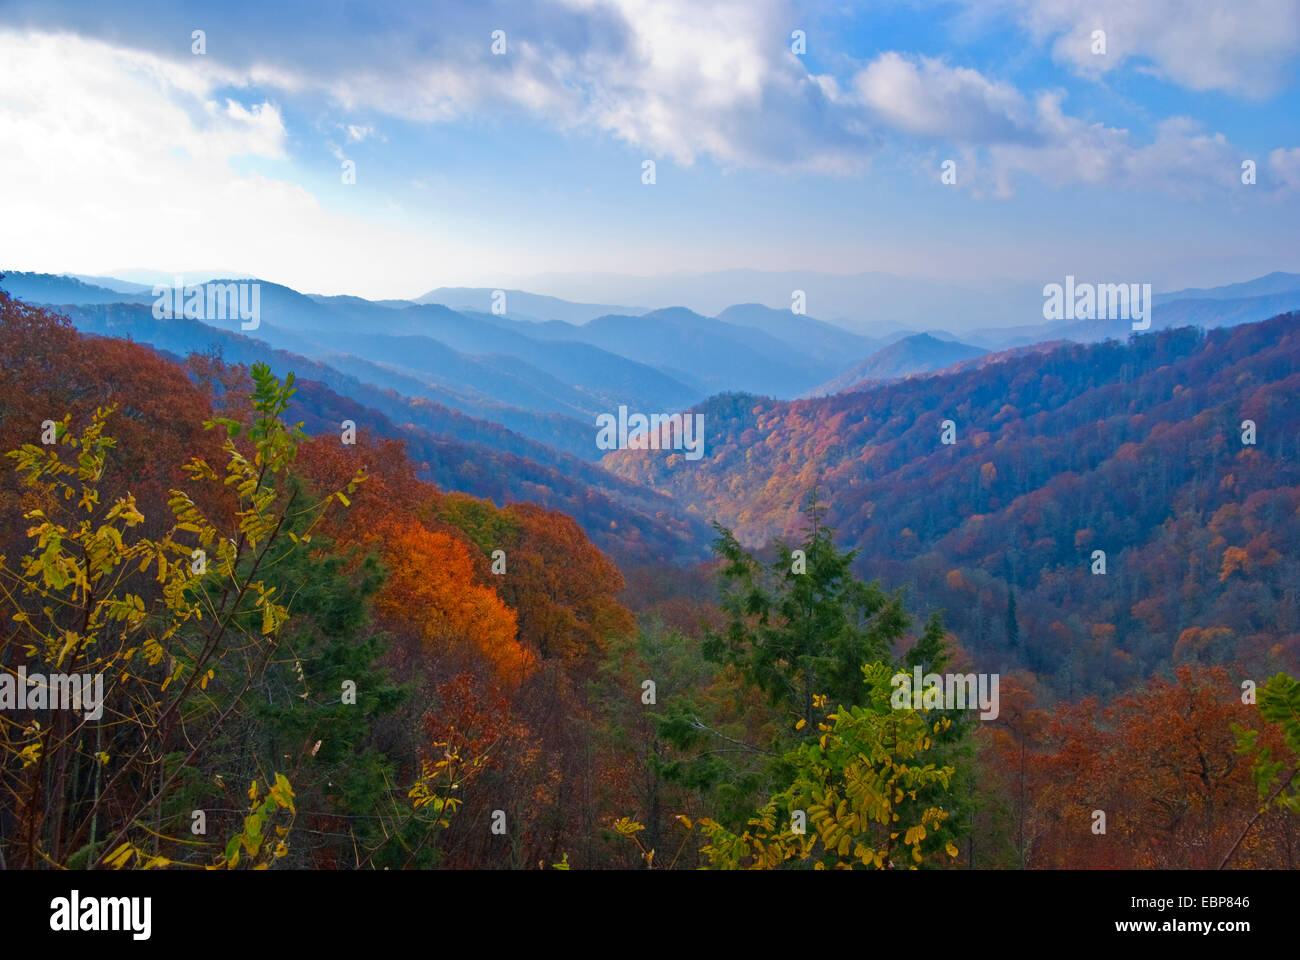 Great Smoky Mountains National Park overview from Newfound Gap Road on autumn morning. - Stock Image